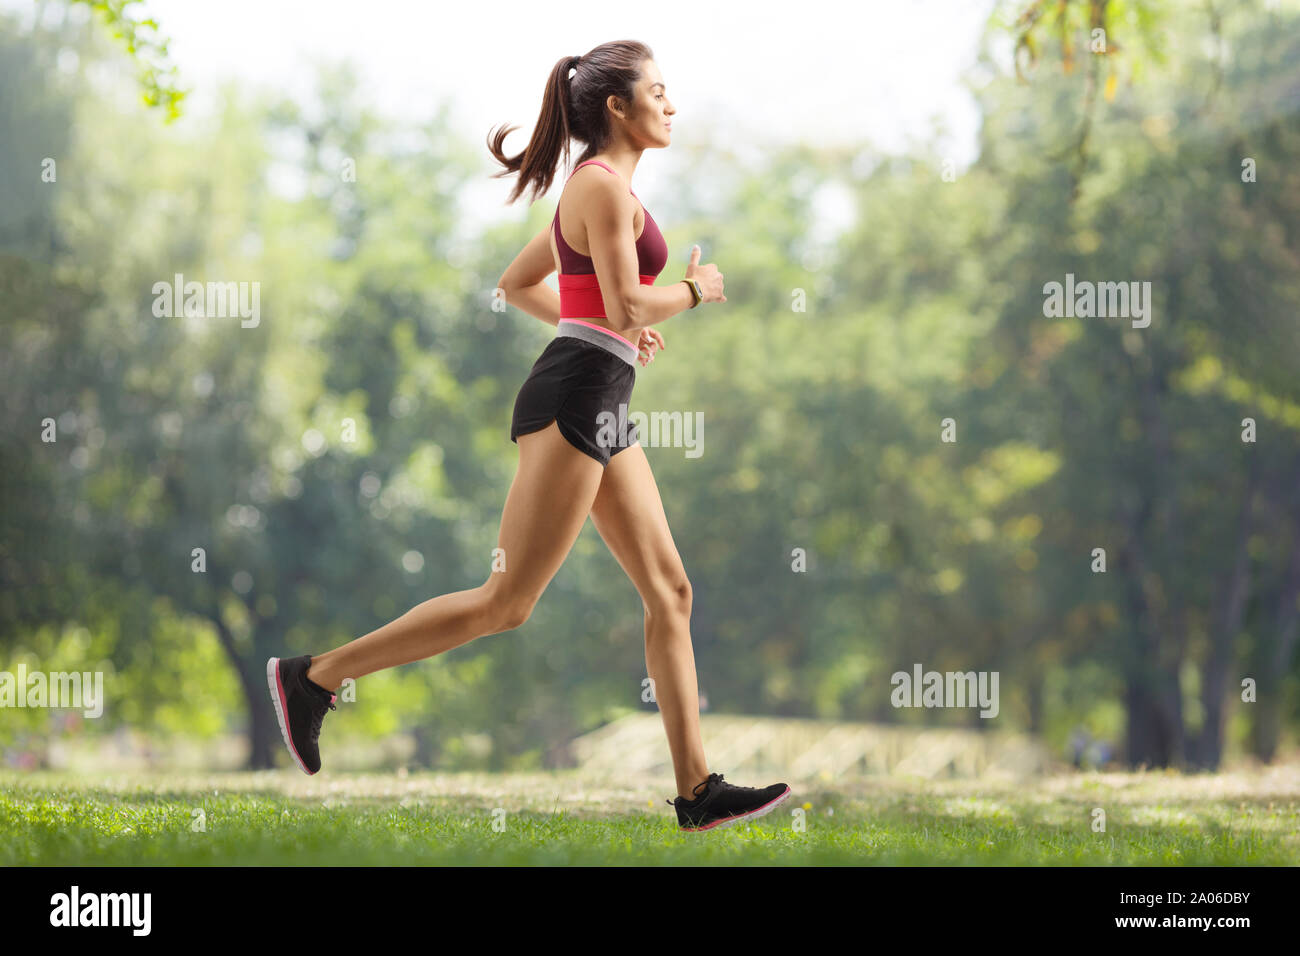 Full length profile shot of a young female athlete jogging outdoors Stock Photo